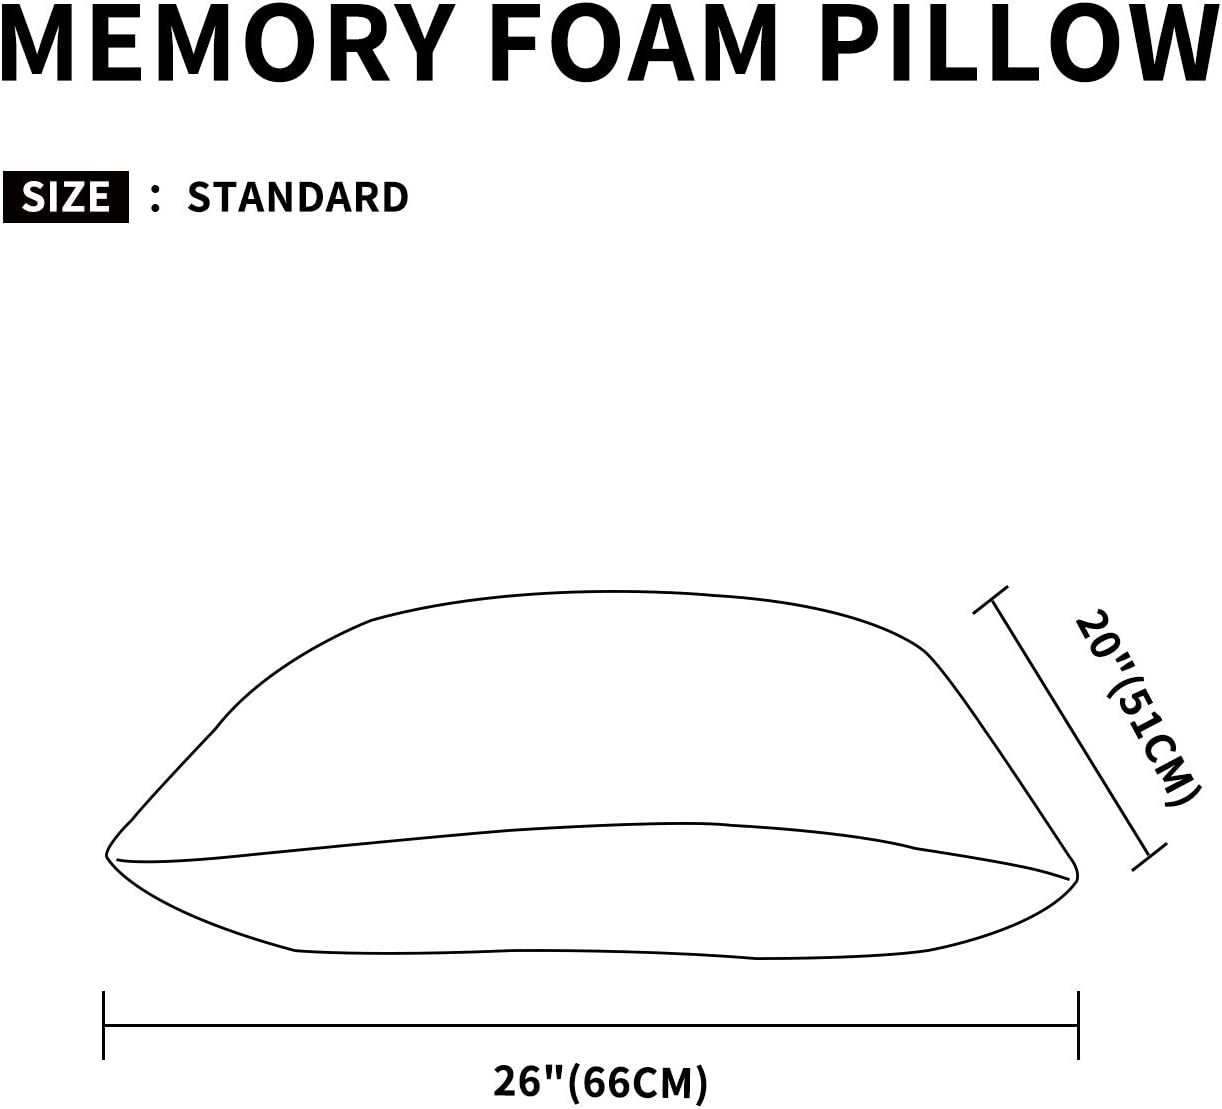 Easy-Going Bamboo Shredded Memory Foam Combination Pillow for Sleeping Sponge Pillow Breathable Washable Removable Sleep Pillow for Back and Side Sleeper 20x36 in Oversize Standard